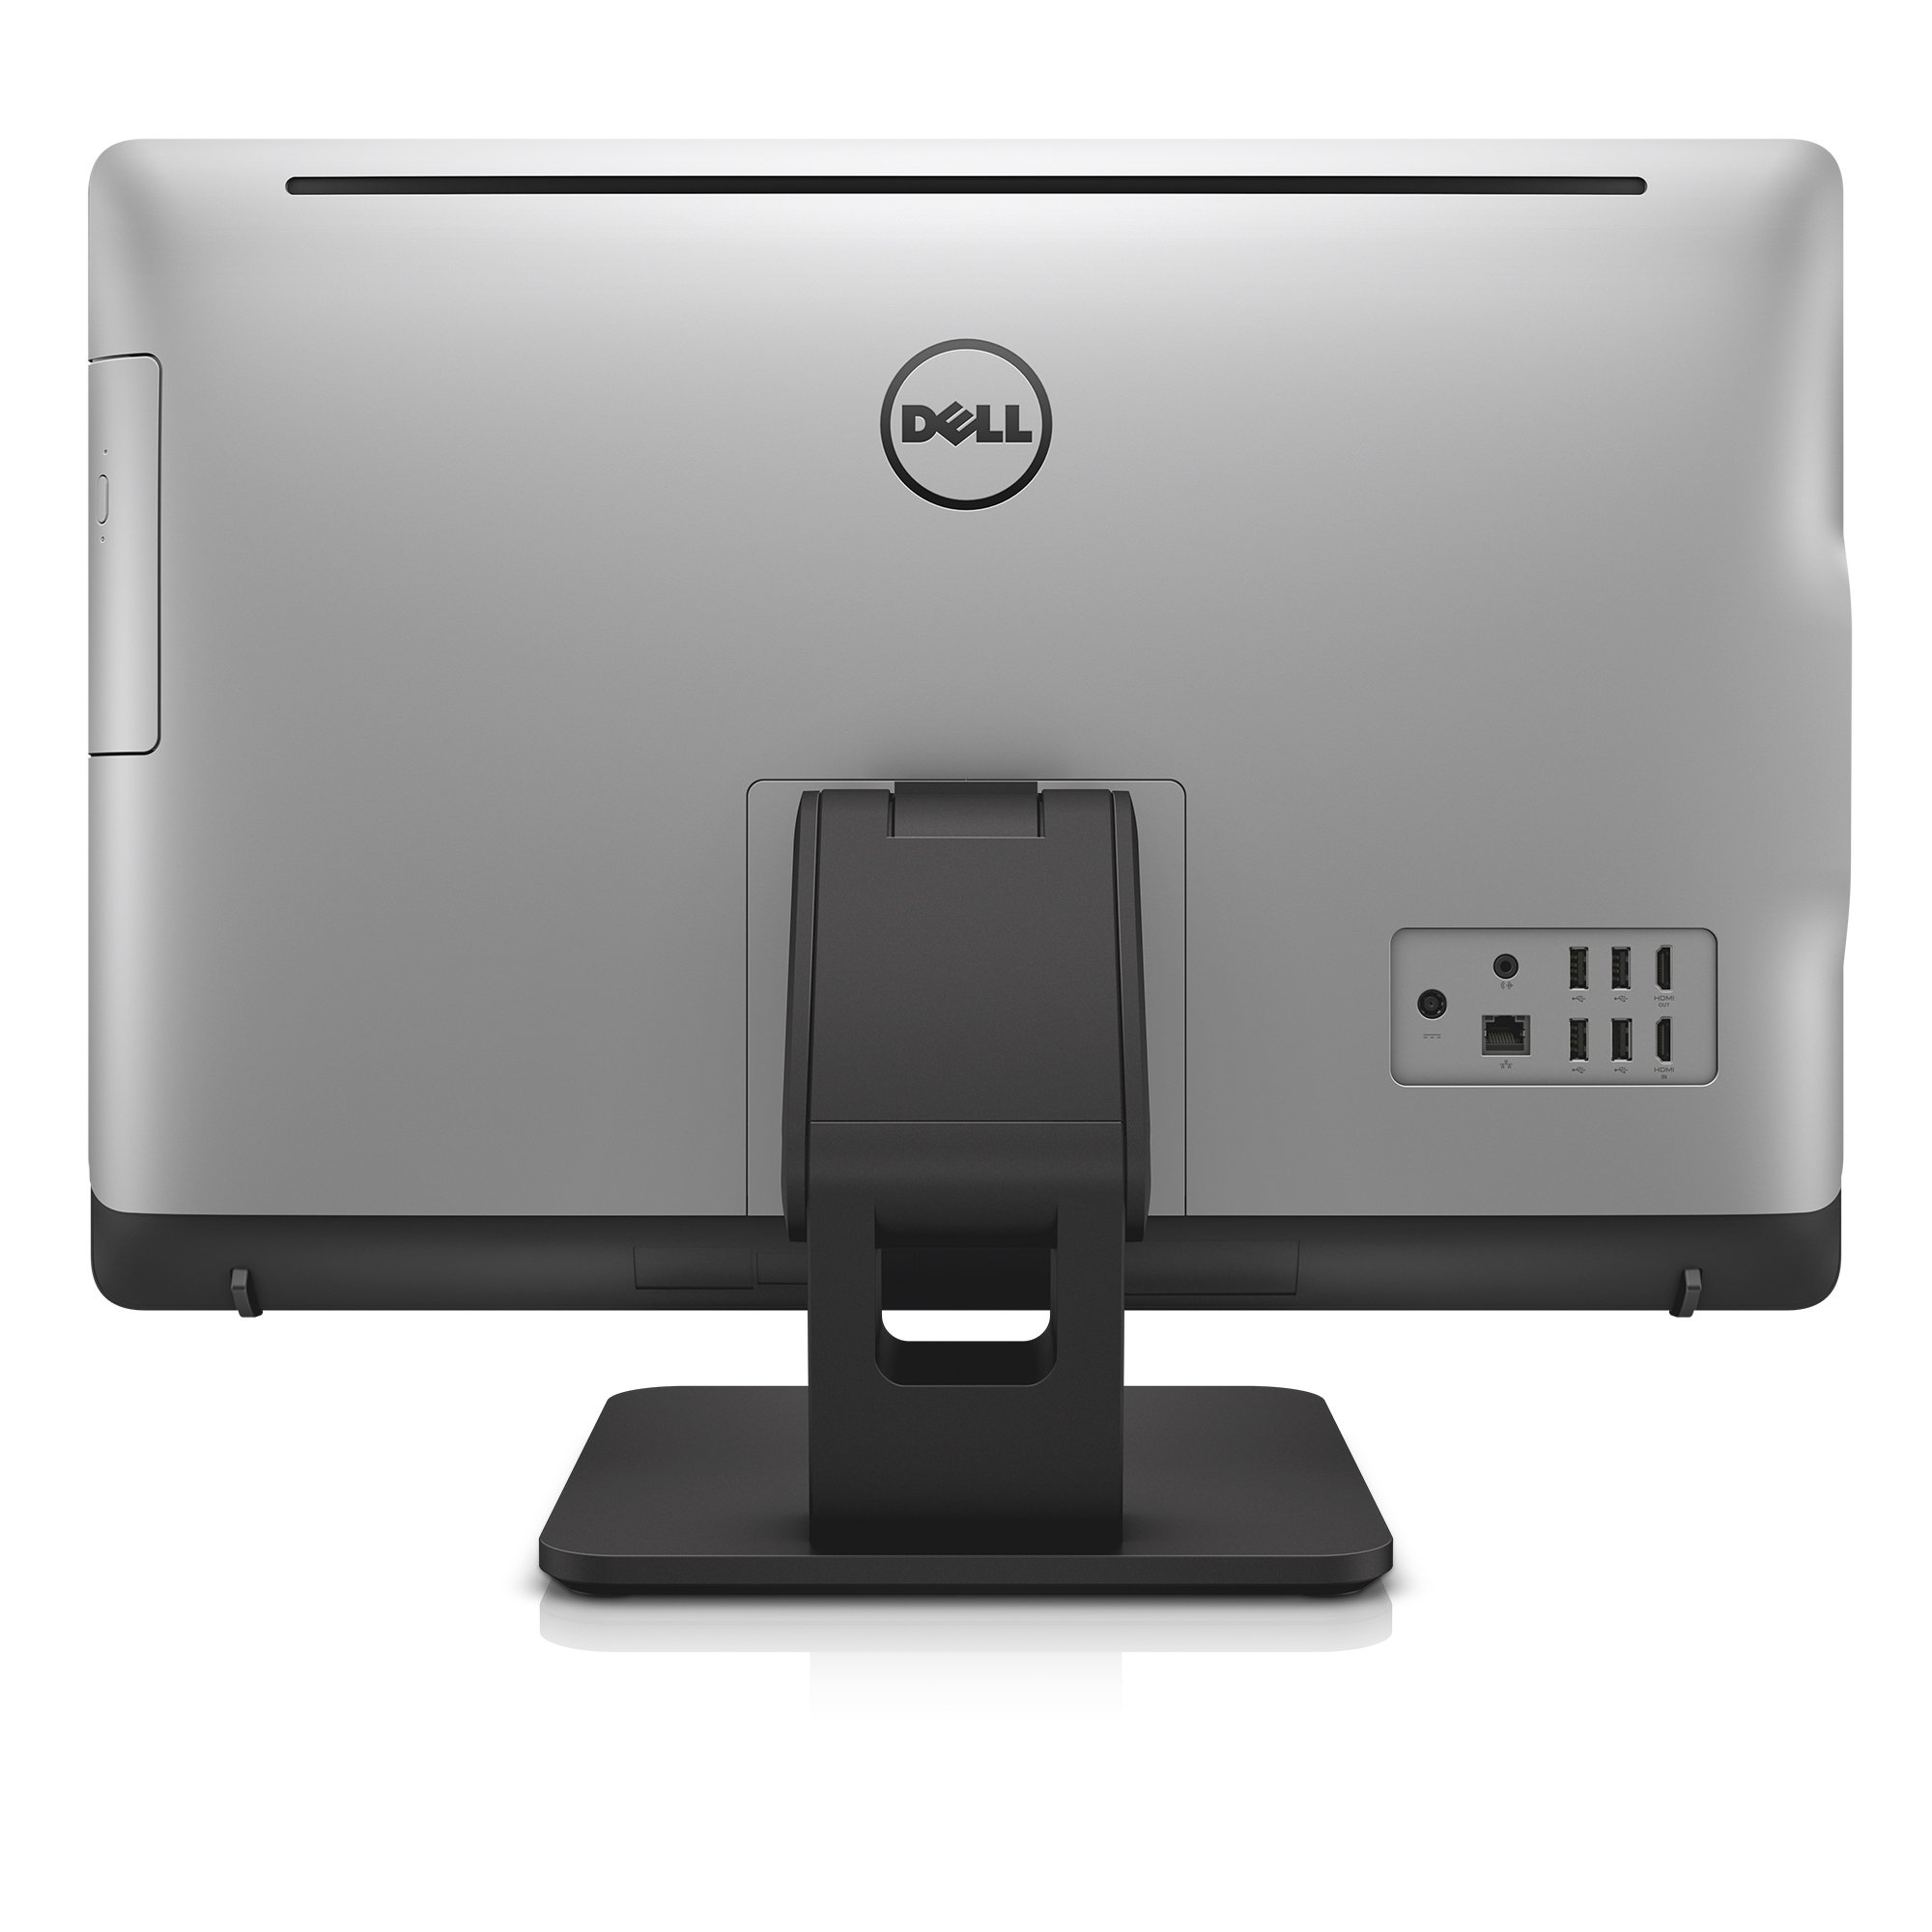 Dell Inspiron i5459-4020BLK 23.8 Inch All in One (Intel Core i5, 12 GB RAM, 1 TB HDD, Silver Cover with Black Articulating Stand) by Dell (Image #2)